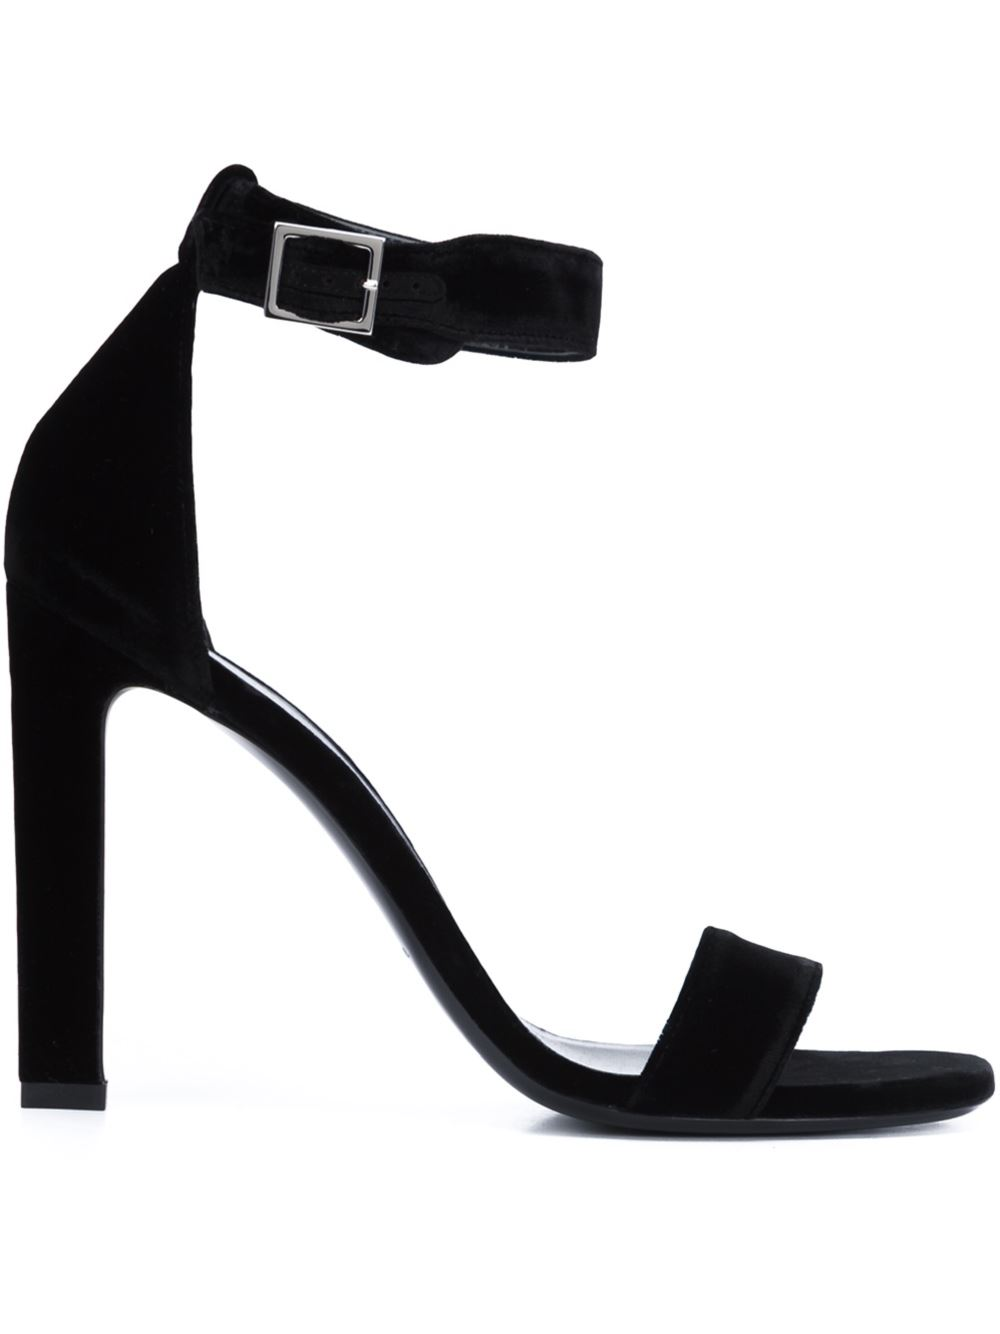 saint laurent sandal.jpg